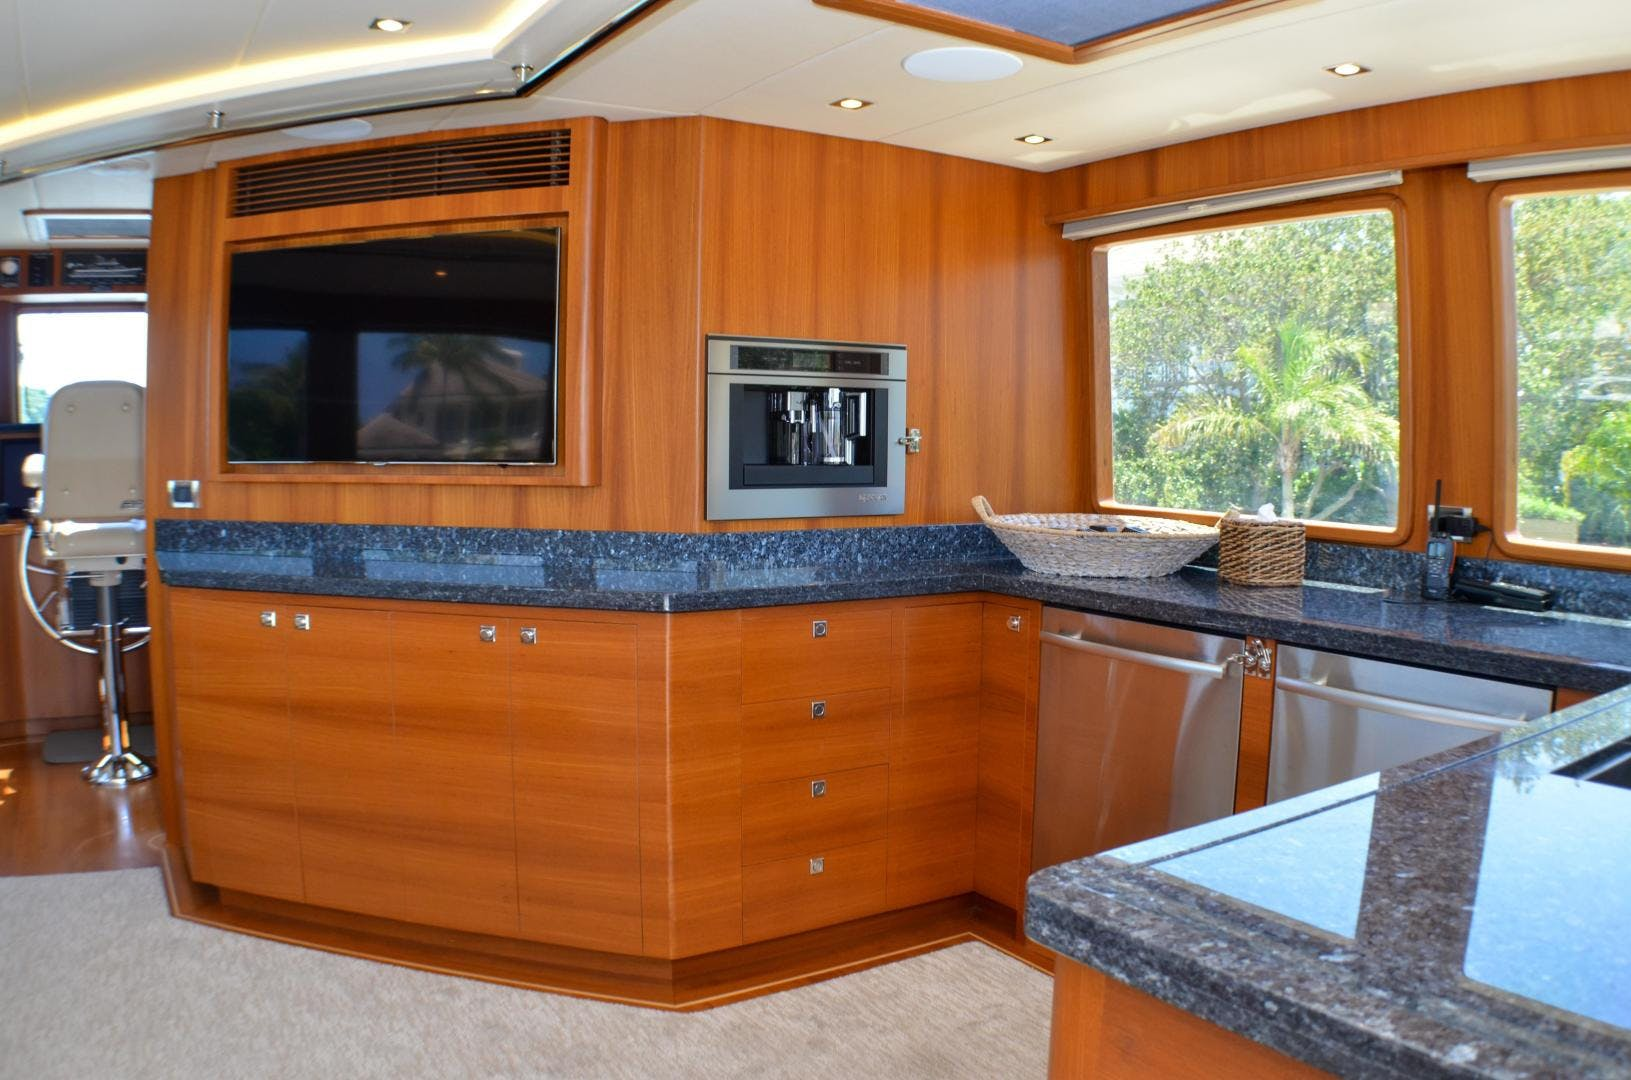 2017 Outer Reef Yachts 86' 860 DBMY Simon Says | Picture 6 of 109